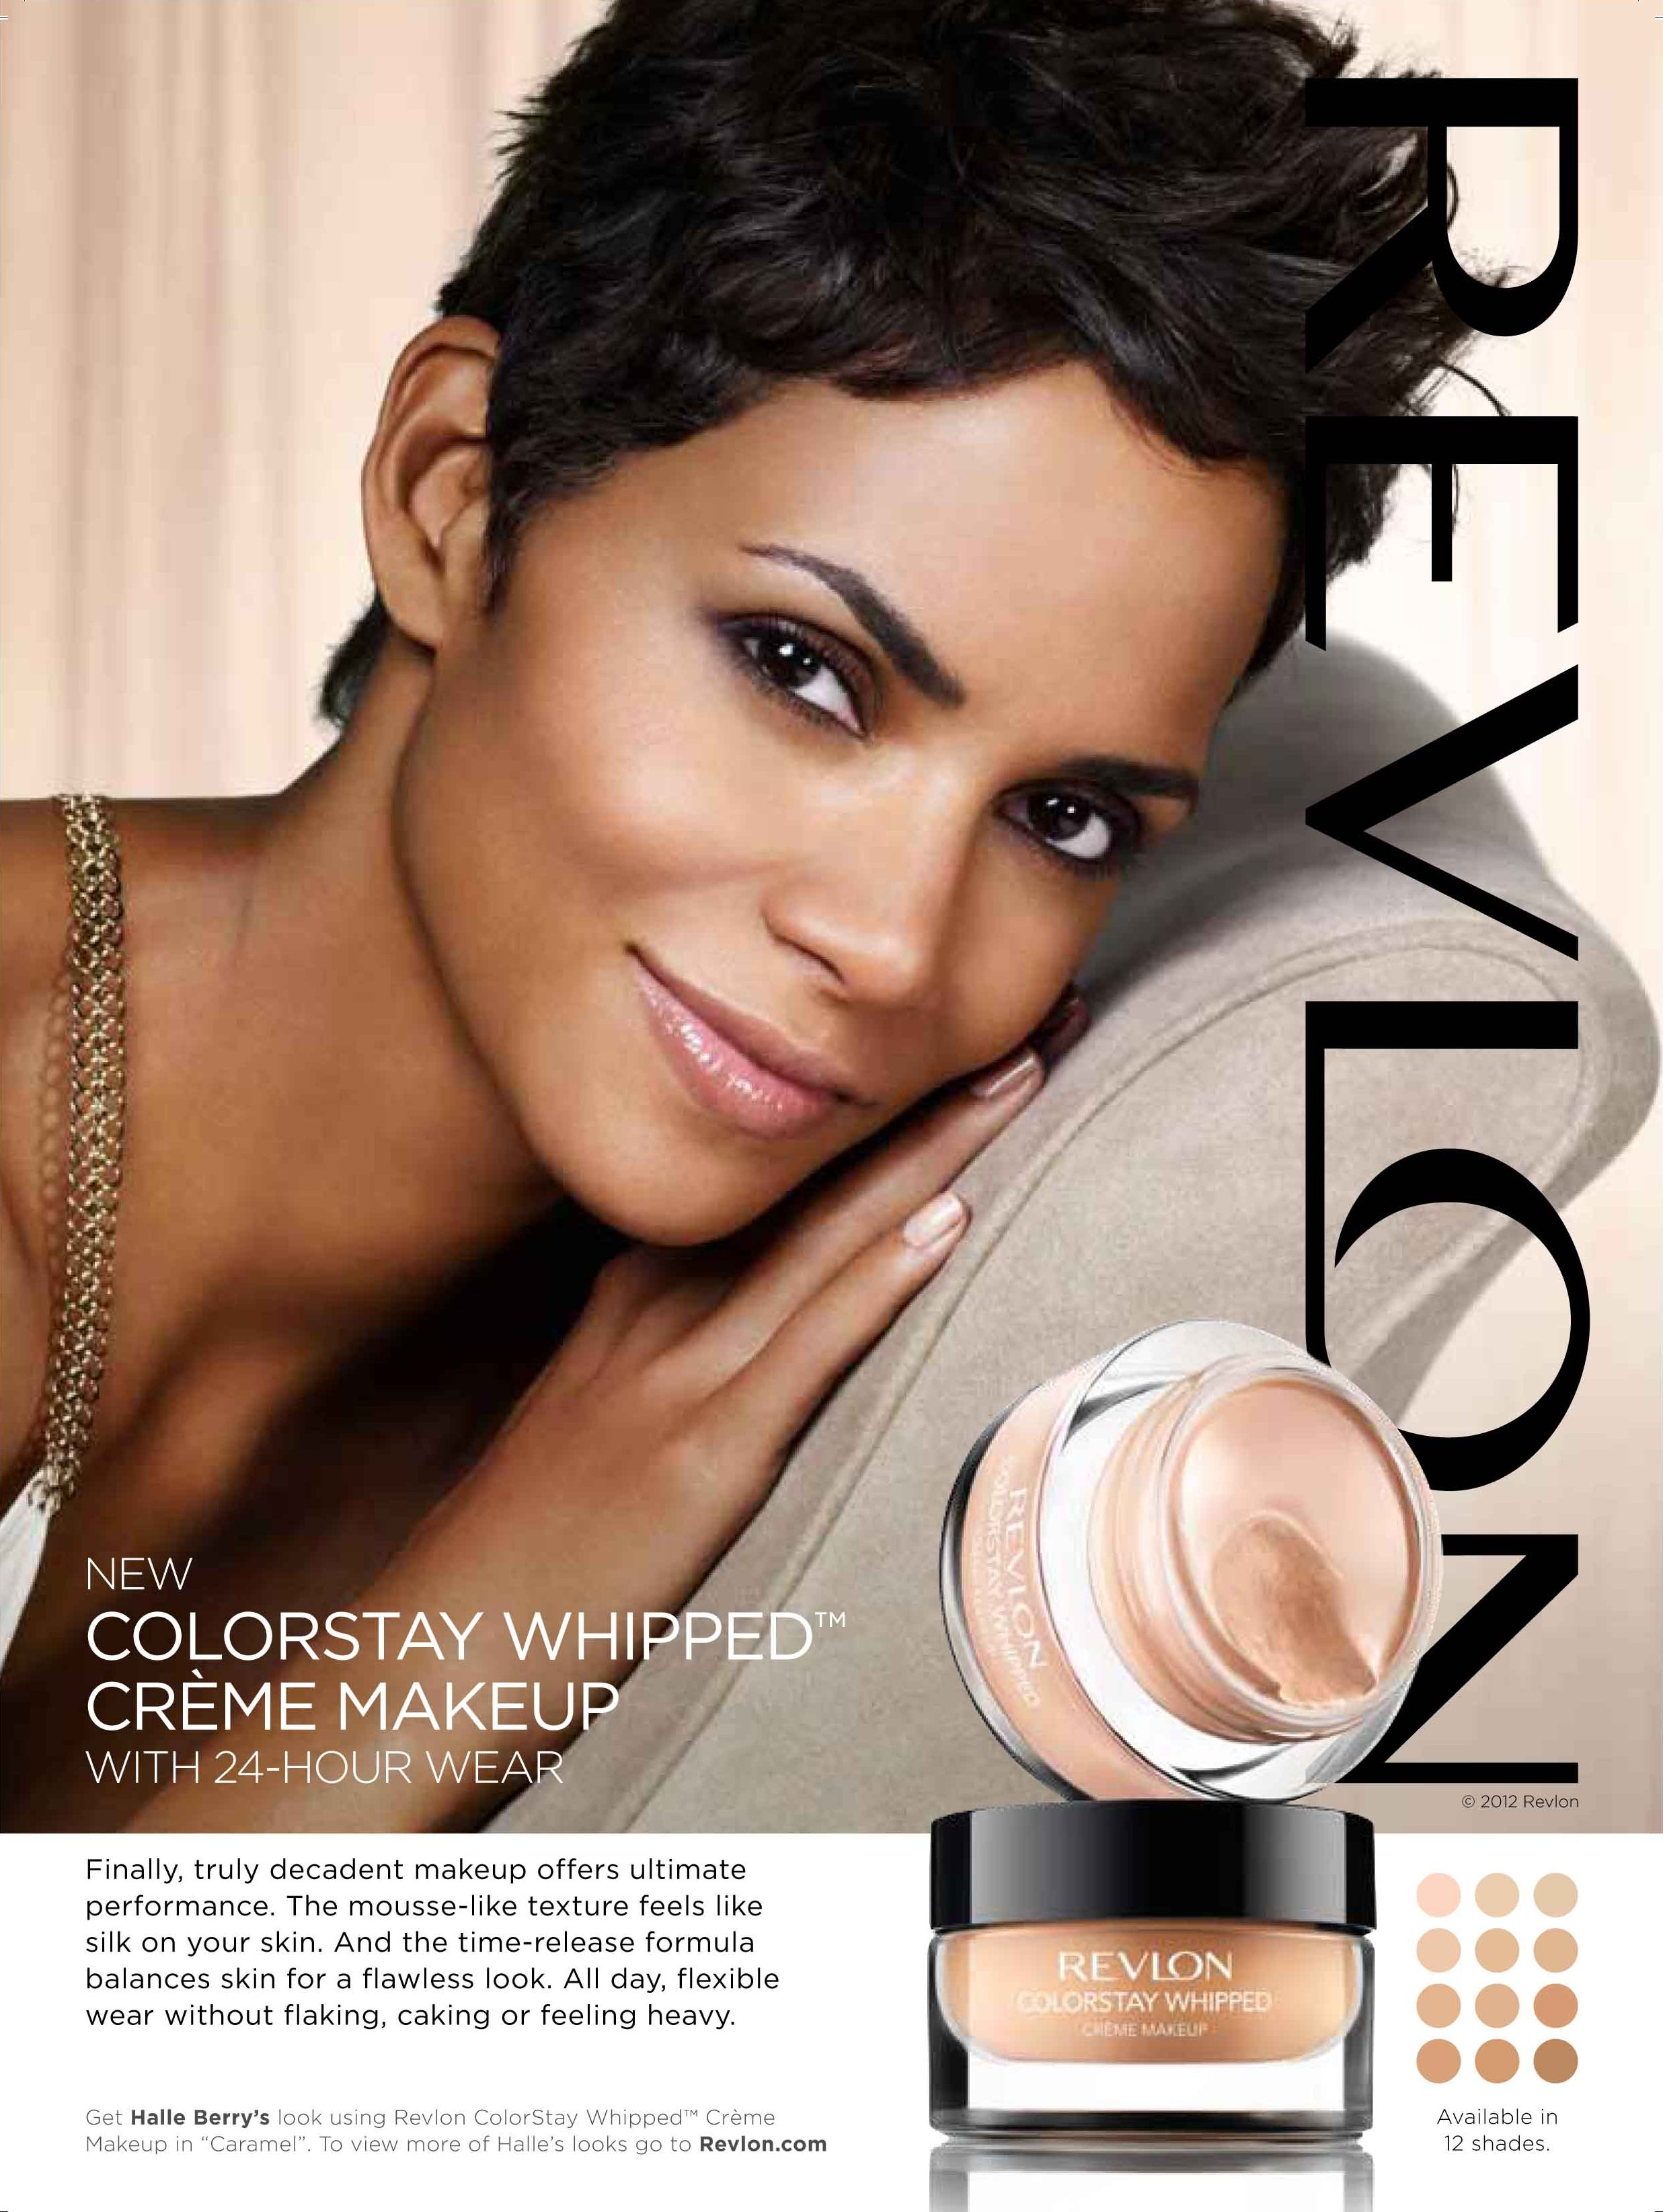 Health and Beauty Fair: Revlon Colorstay Whipped Creme Makeup